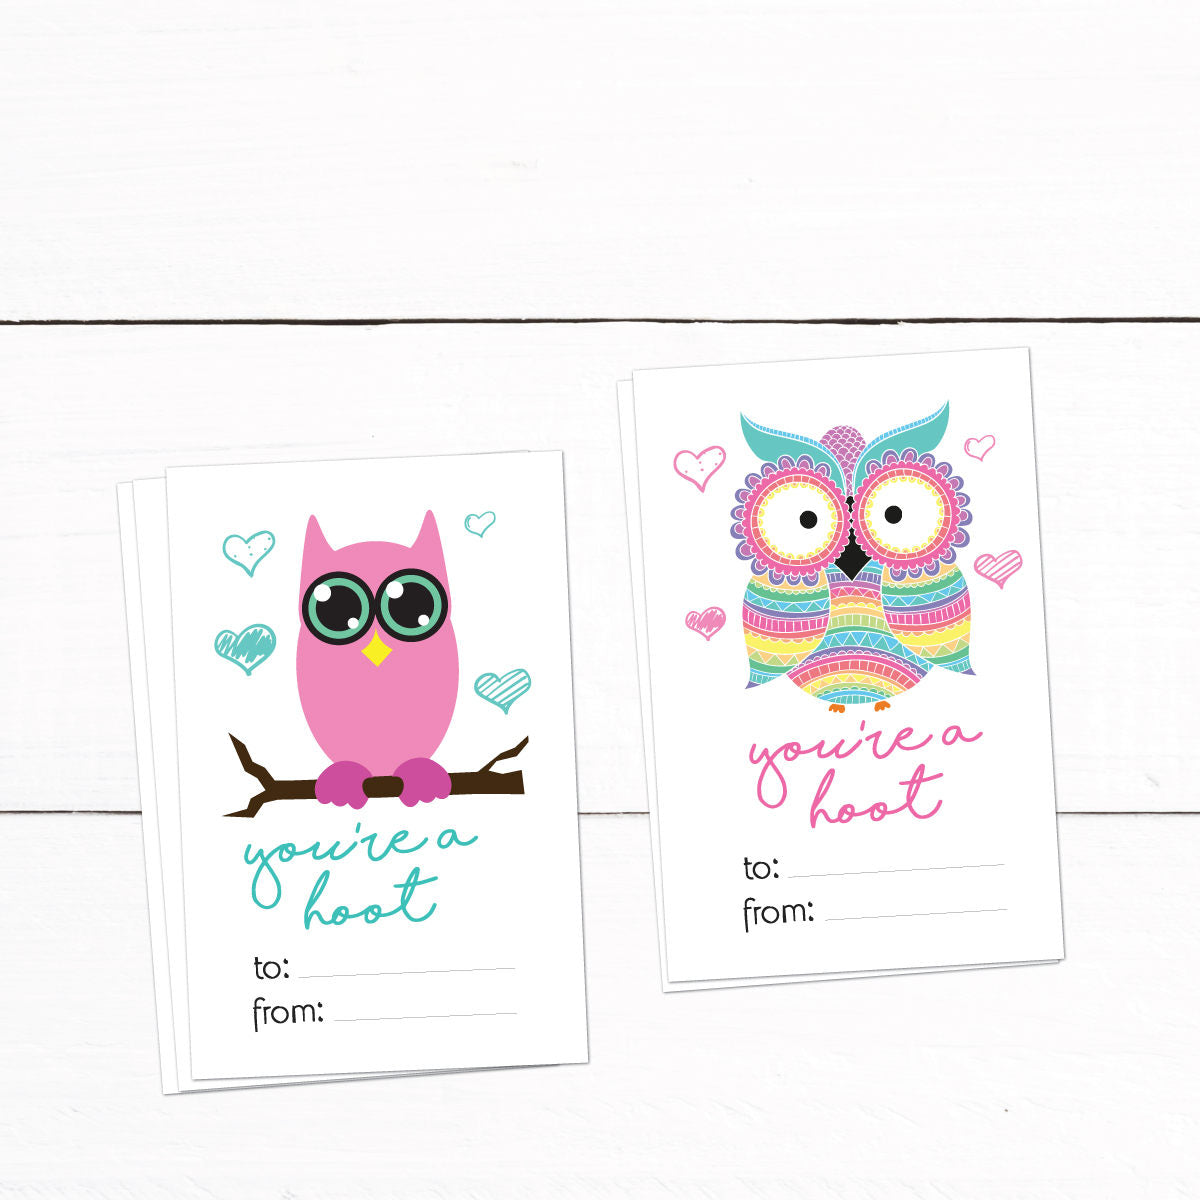 Owl Valentines Day Cards - Kids Valentines Cards ...